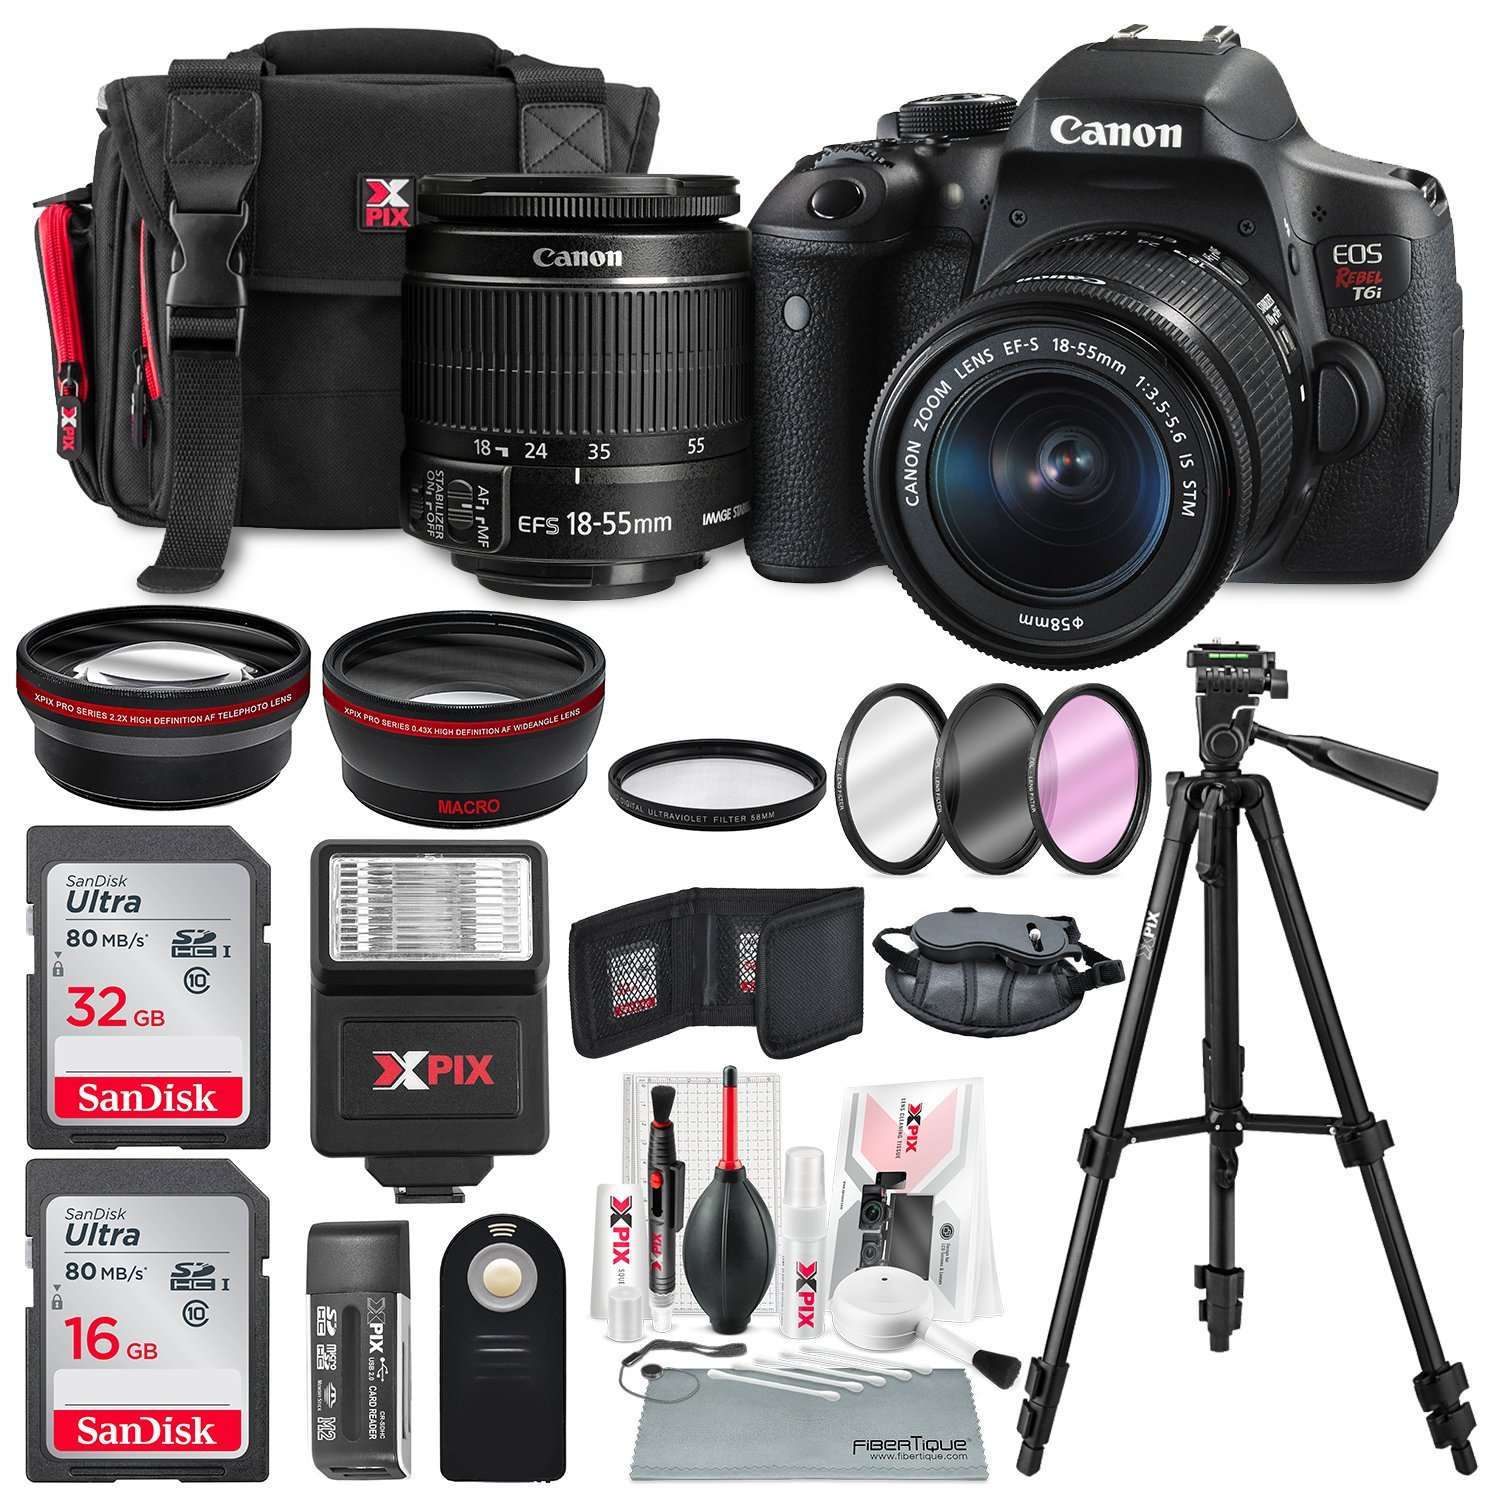 81E2Iy ruhL. SL1500  - Canon T6i 750D Review and Samples